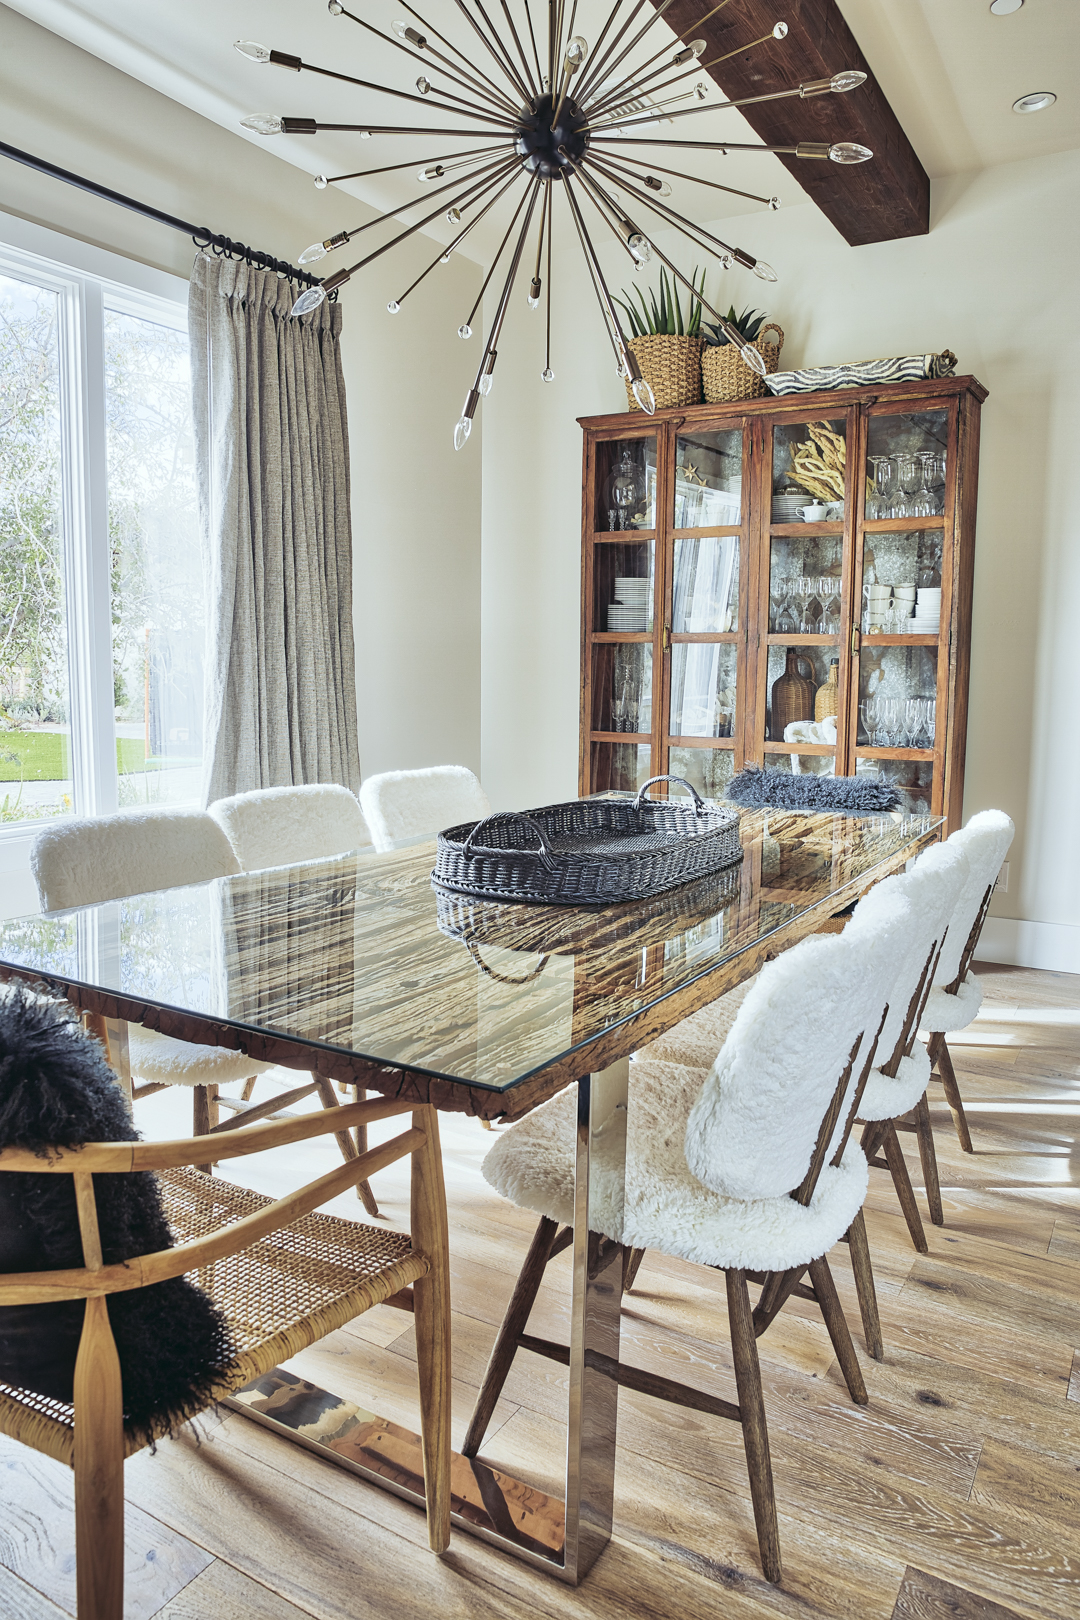 Bungalow Furniture & Accessories - Scottsdale, AZ - Dining Room